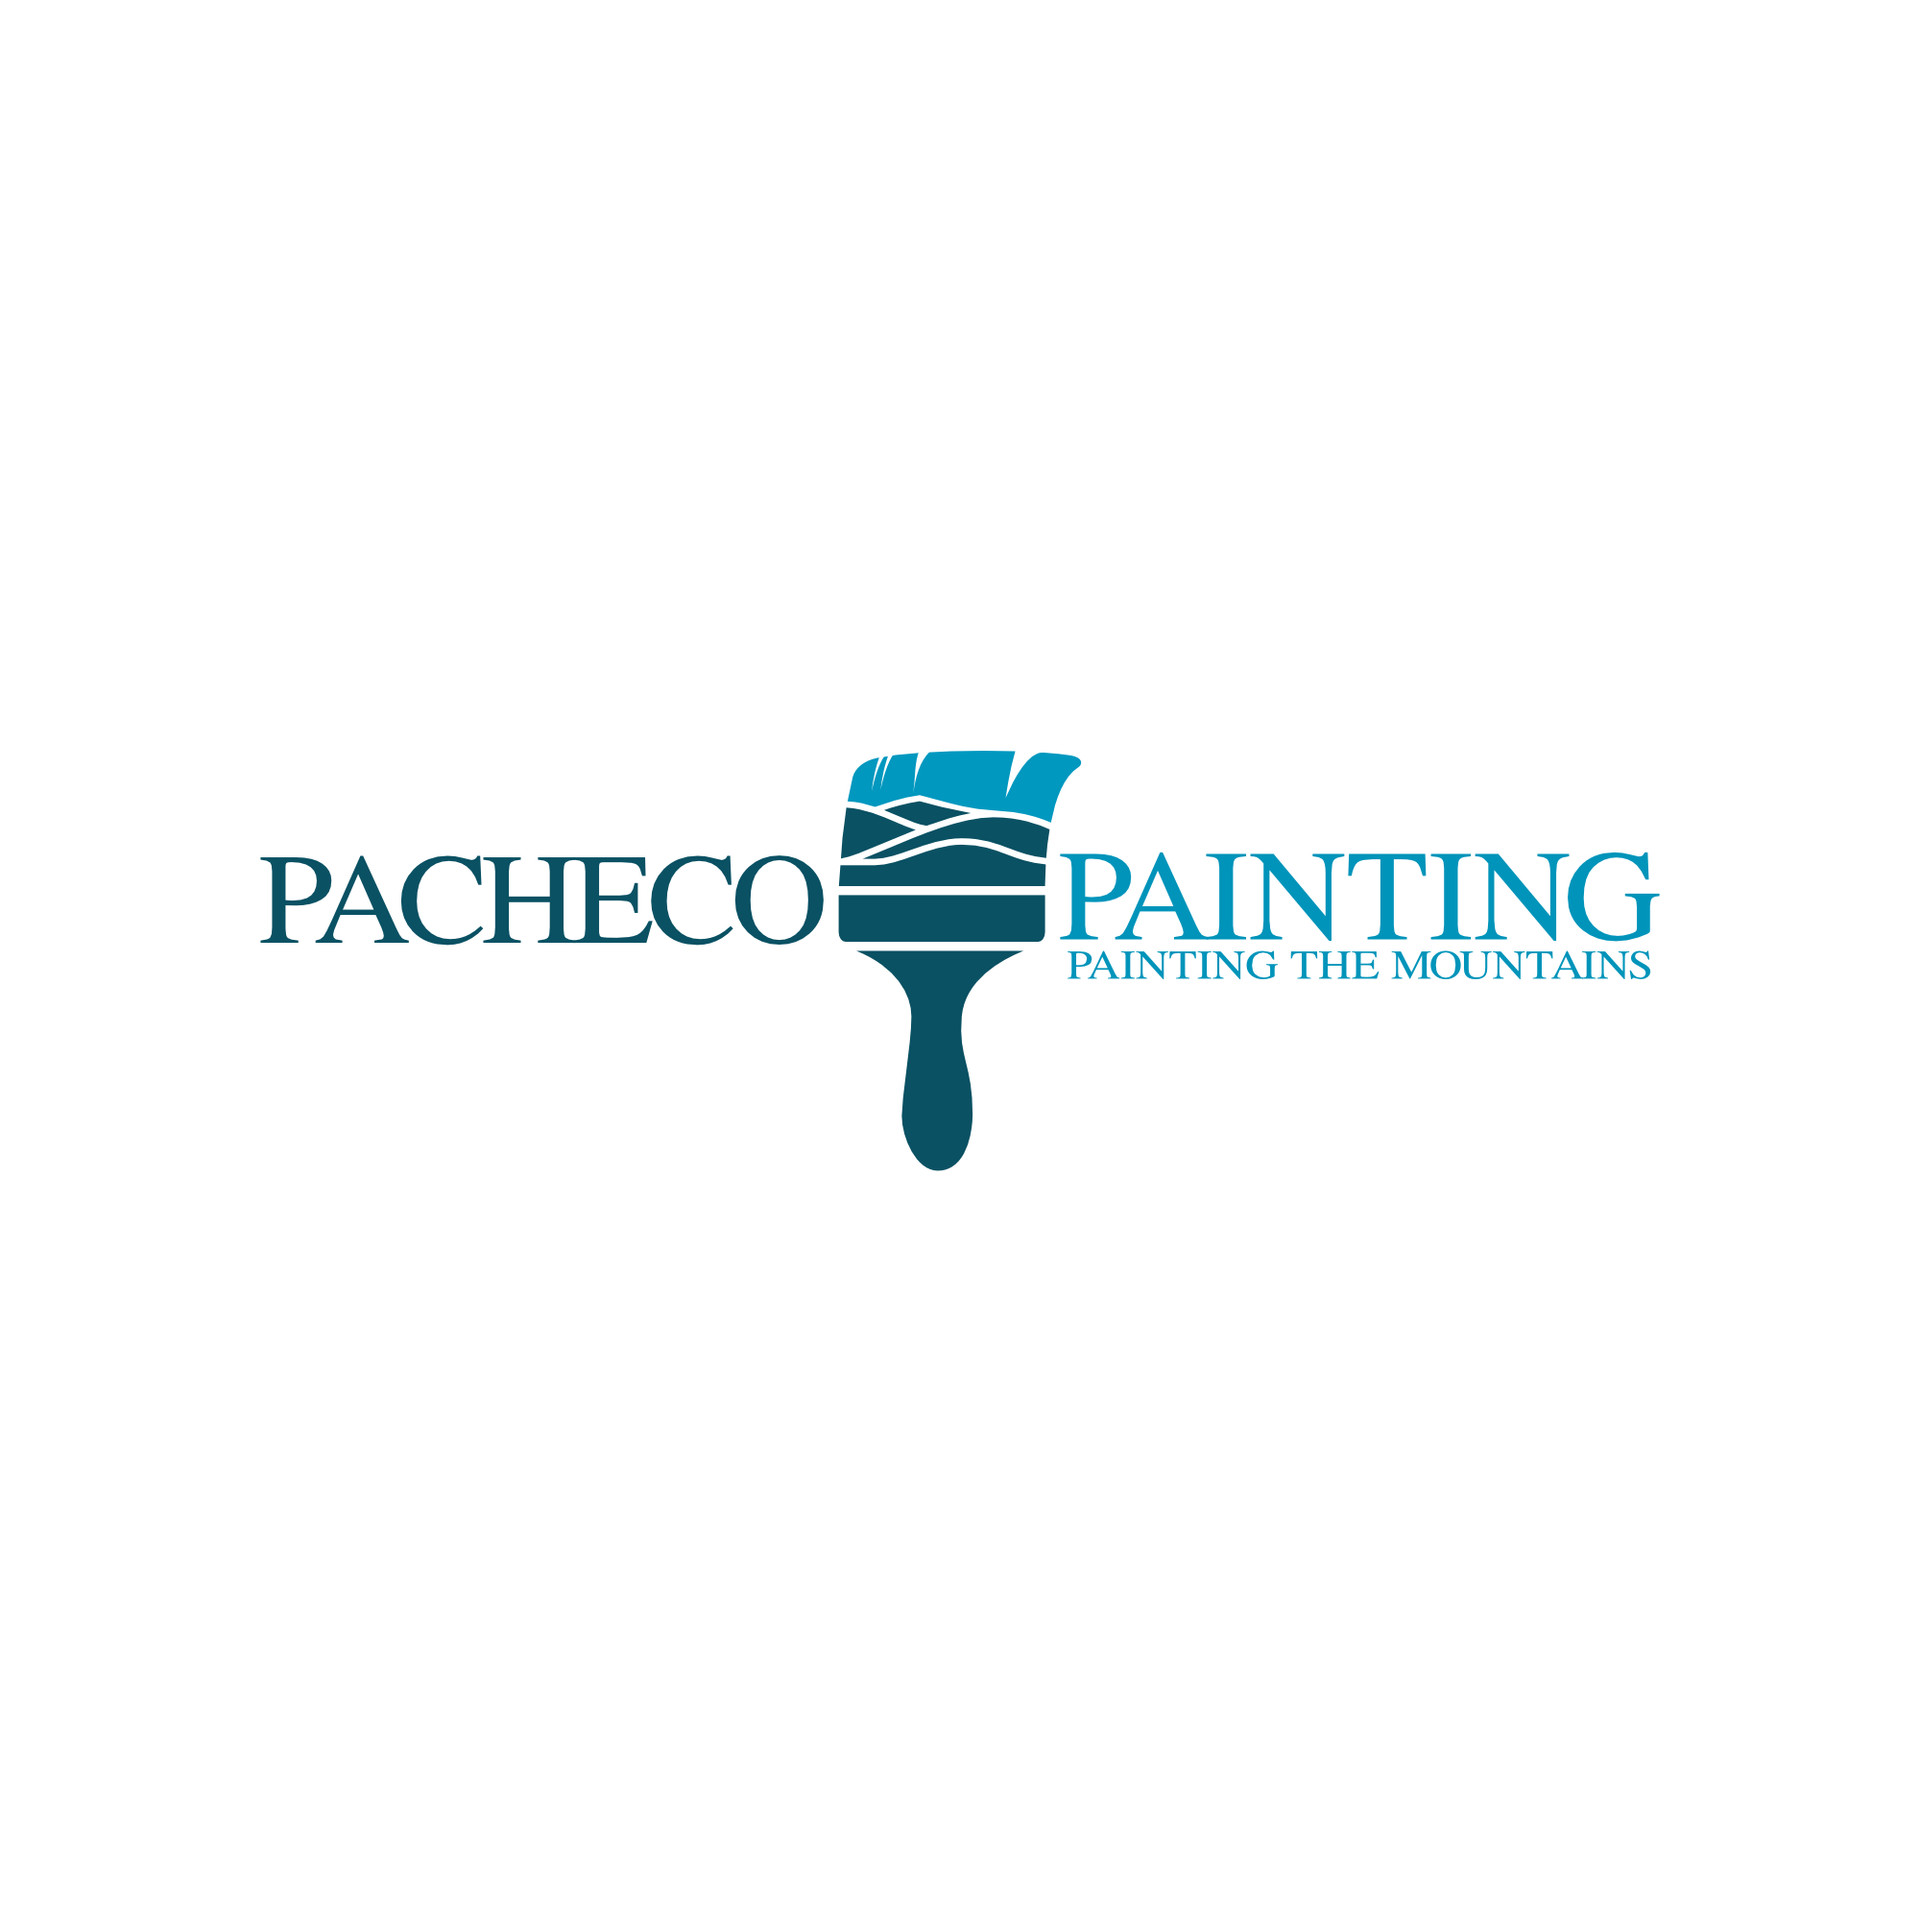 Pacheco Painting